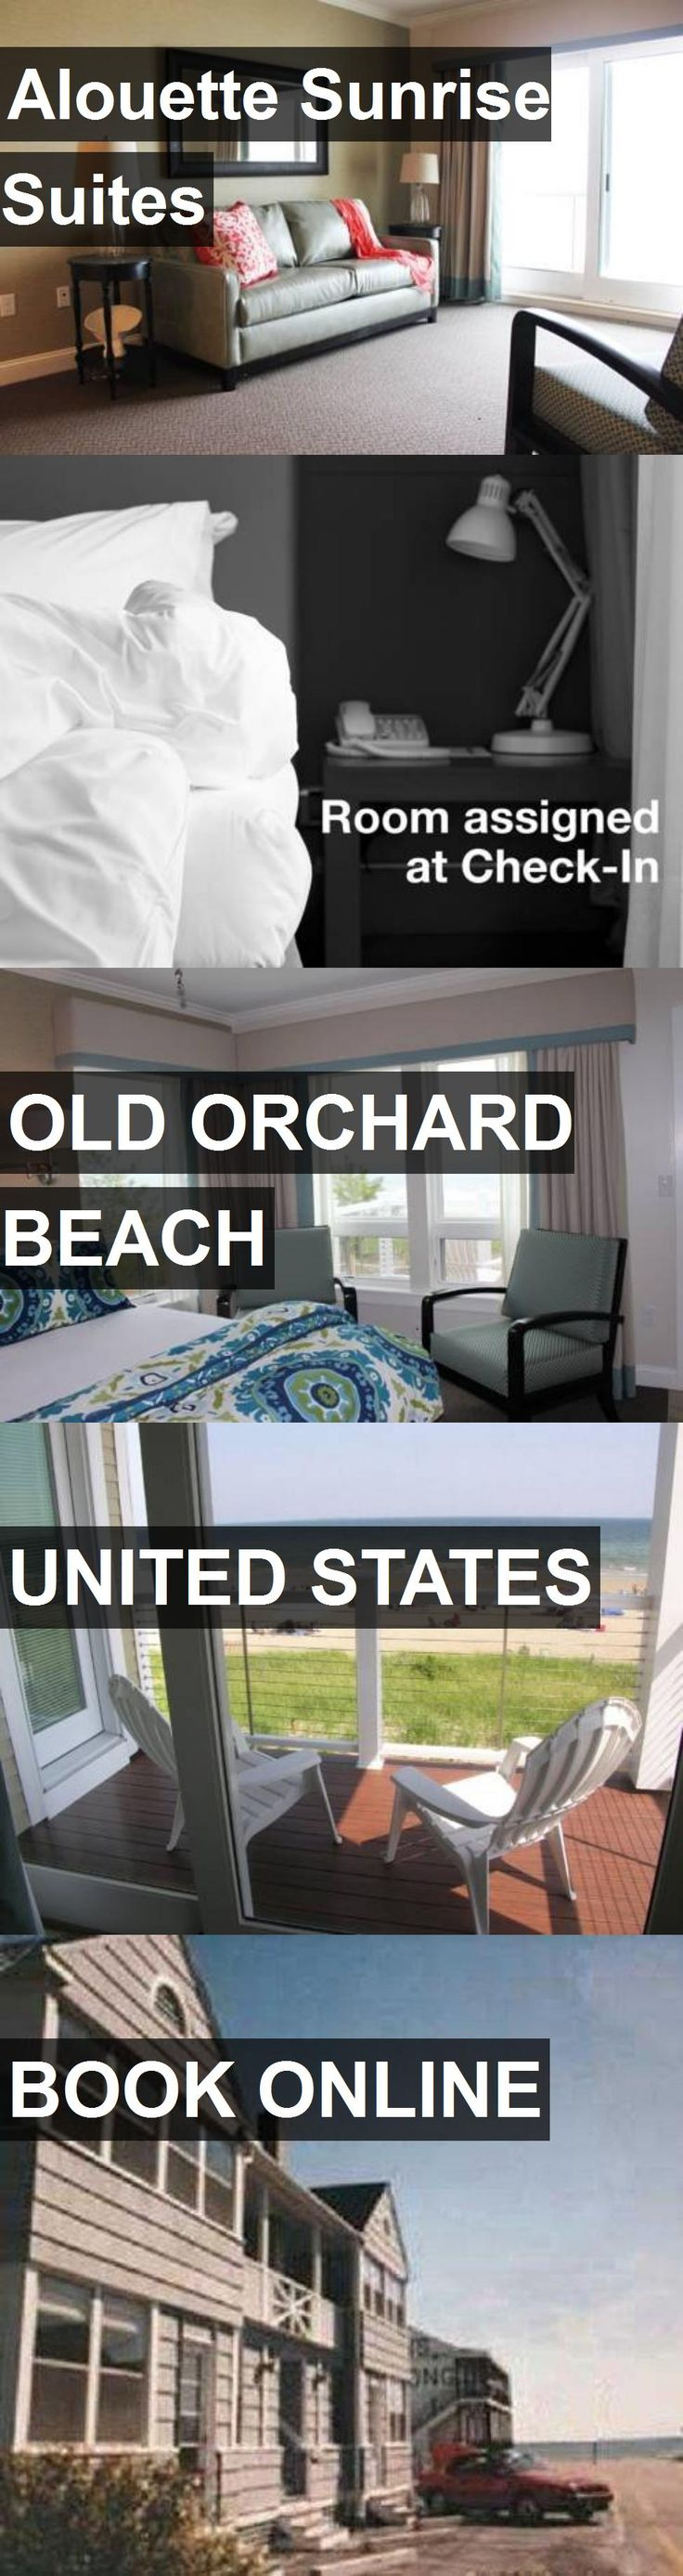 Hotel Alouette Sunrise Suites in Old Orchard Beach, United States. For more information, photos, reviews and best prices please follow the link. #UnitedStates #OldOrchardBeach #hotel #travel #vacation